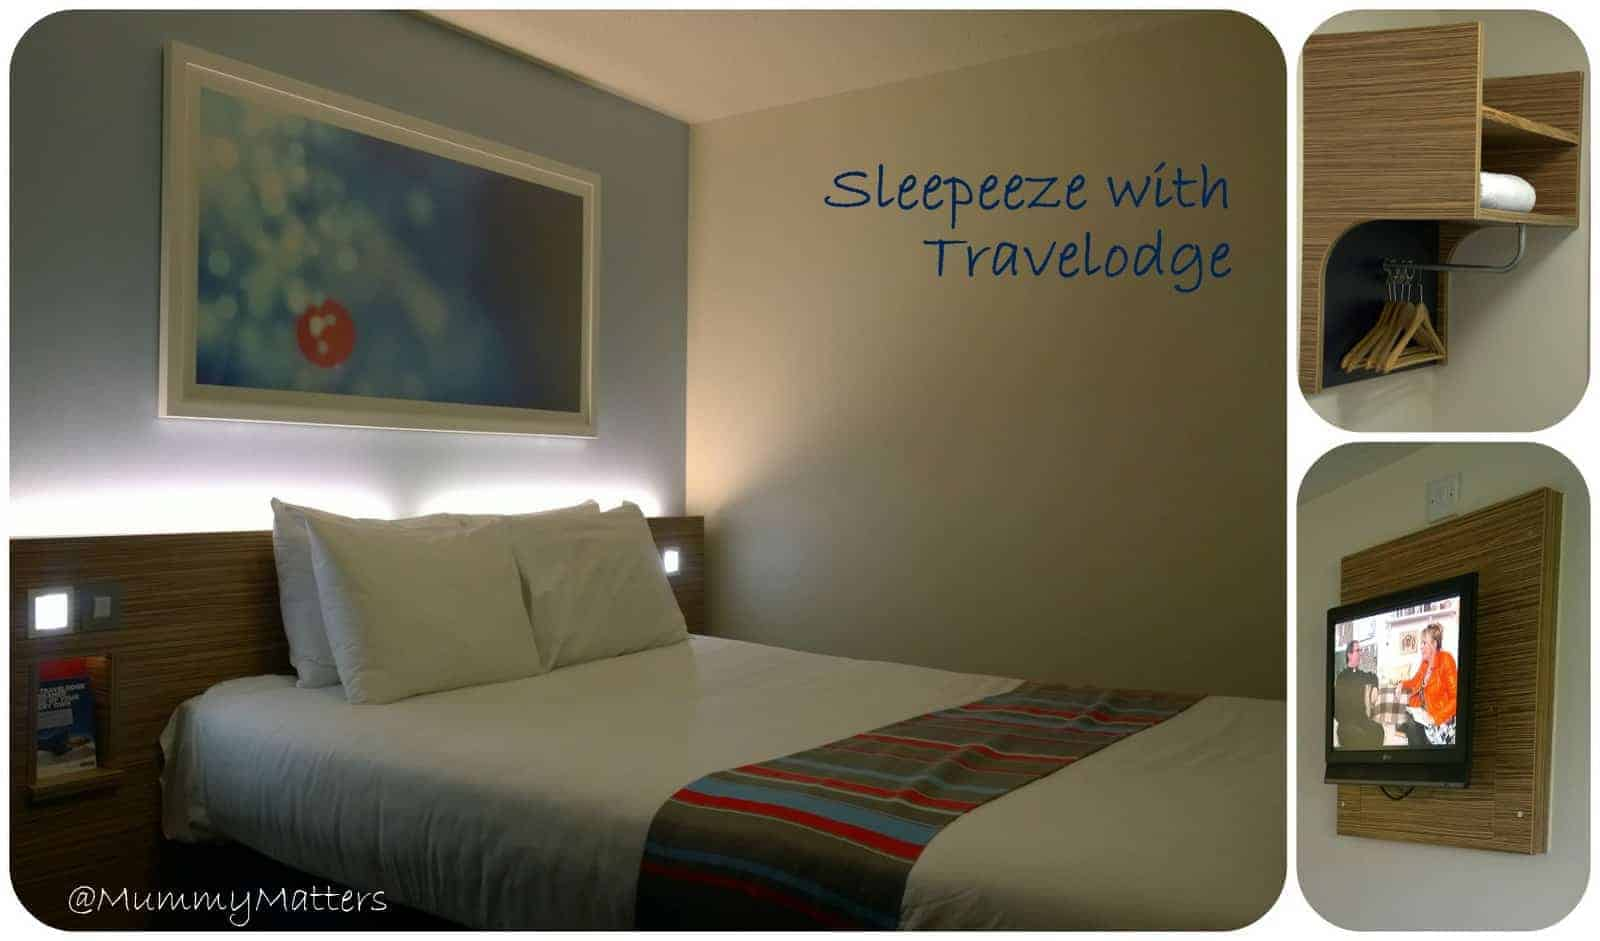 Our pre-Christmas getaway with Travelodge